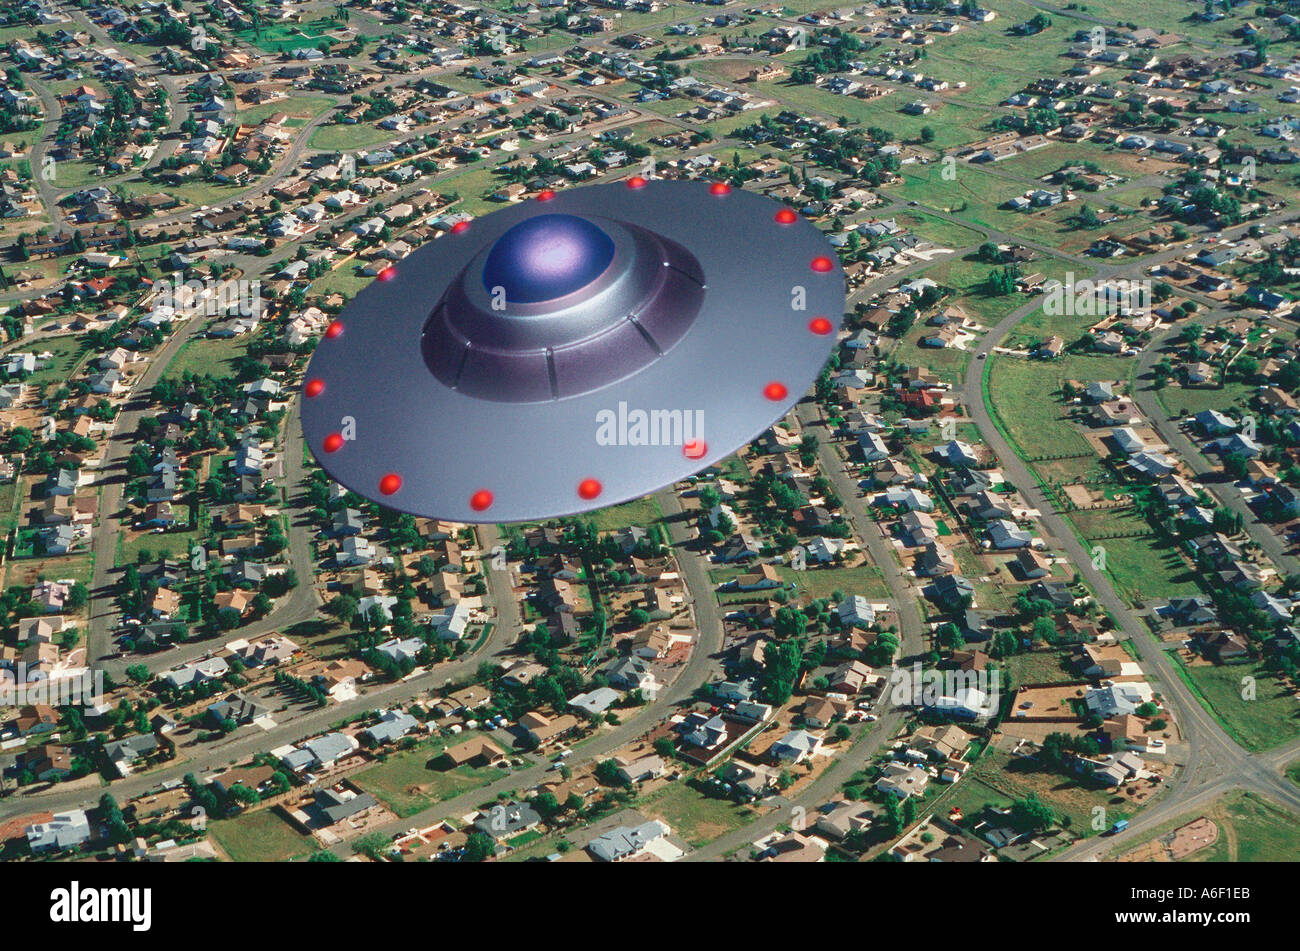 UFO over the suburbs - Stock Image